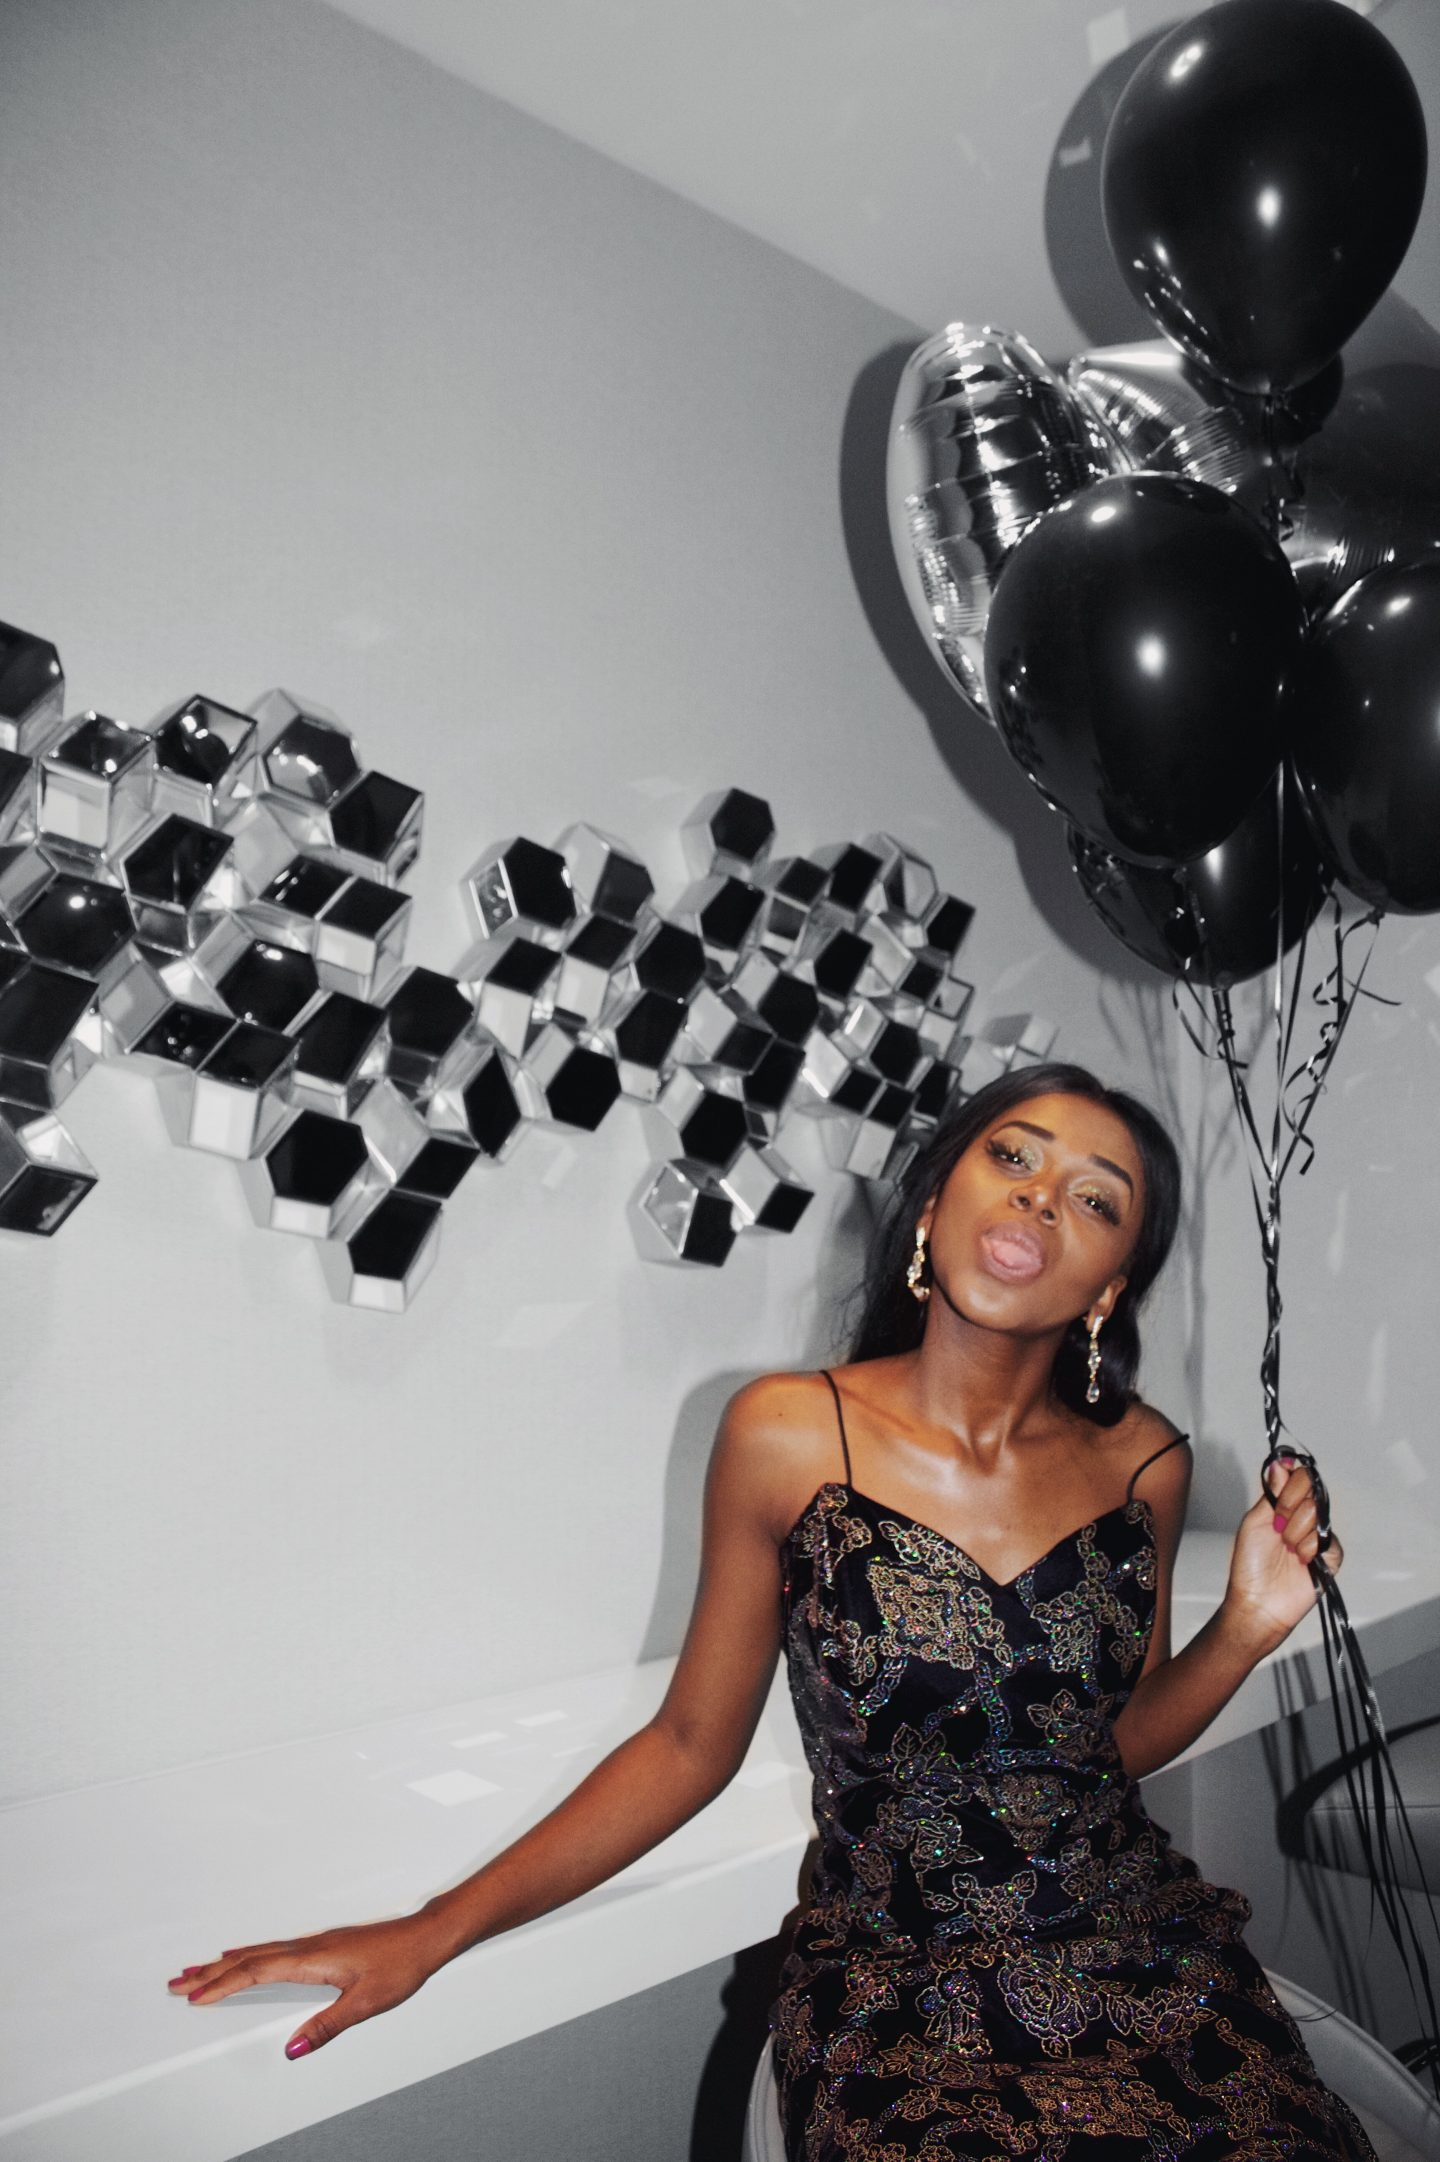 birthday photoshoot, 20th birthday, glitter dress, ballons